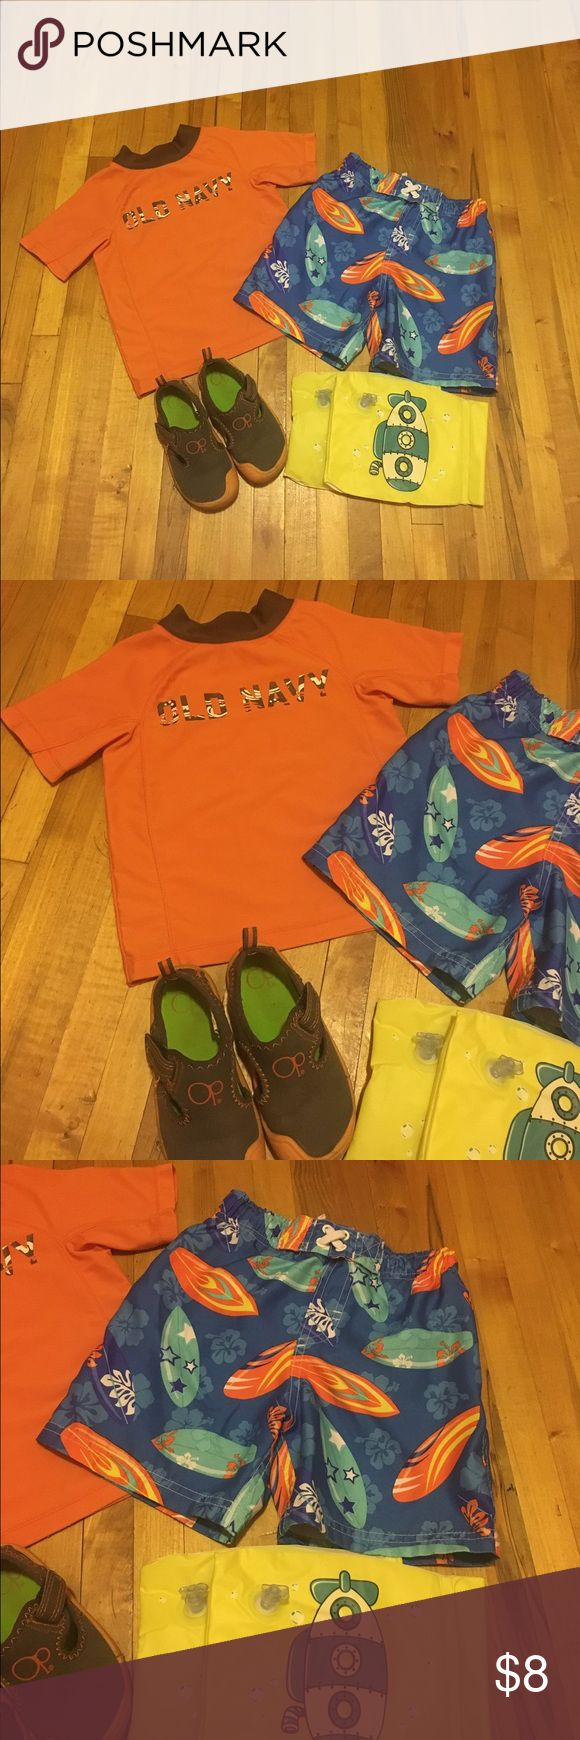 Swim set for Toddler Boy's Size 2T-3T Toddler Boy's Swim Set Size 2T-3T.Old Navy Short sleeve size 2T,Circo  size 3T have string adjustable swim trunk.Op water shoes Size 7-8M.Arms Floats.All still in good condition.No stains or any holes.Came from a smoke free and pet free home. Old Navy Matching Sets